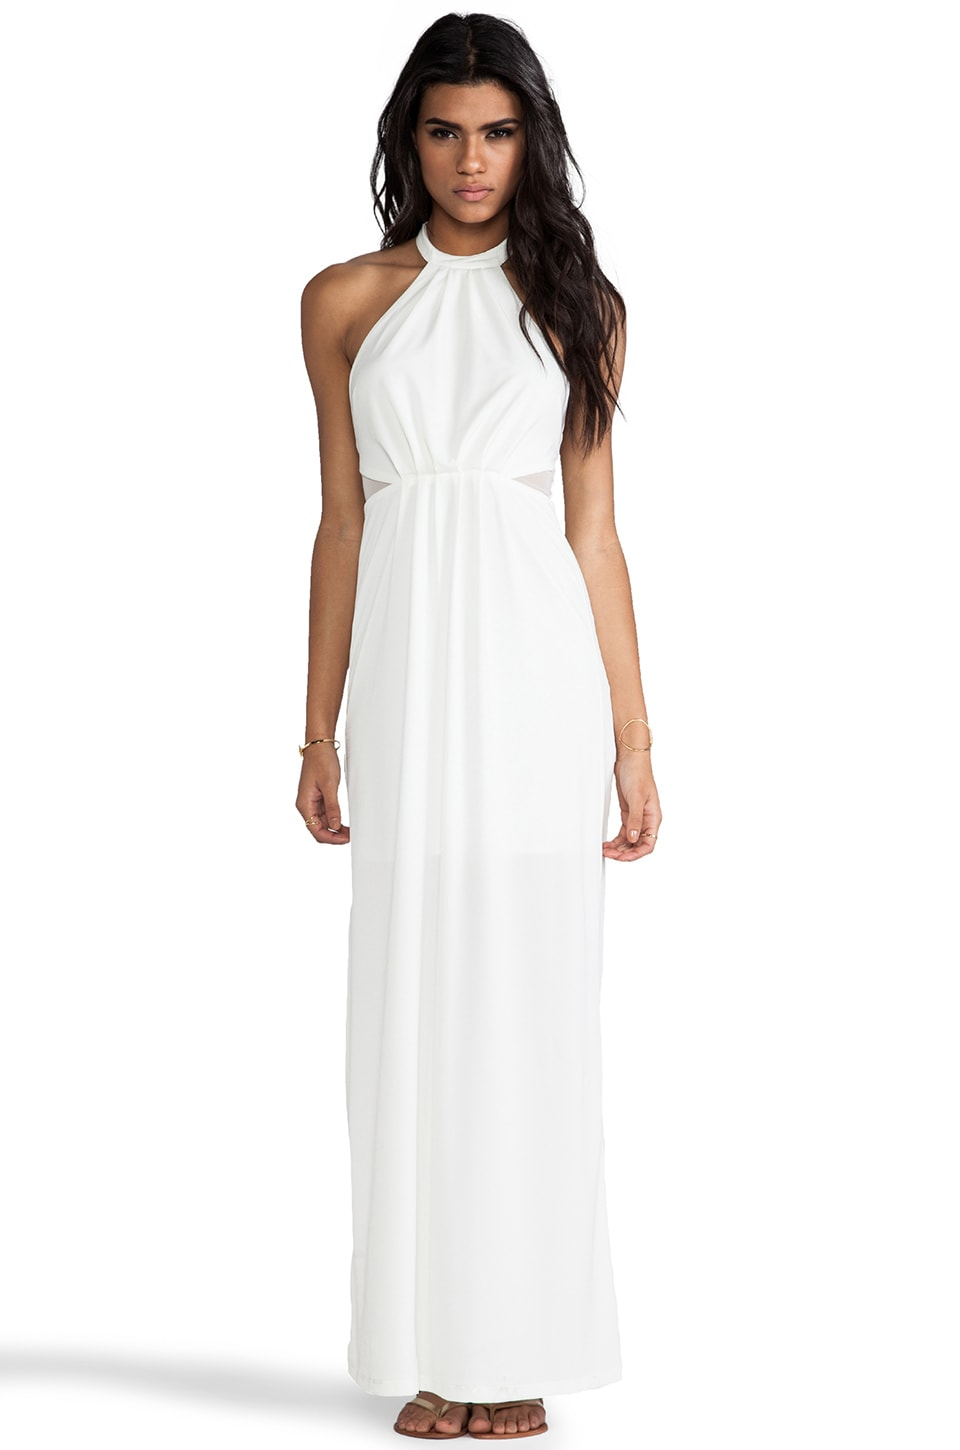 Bobi BLACK LABEL Maxi Halter Dress in Ivory